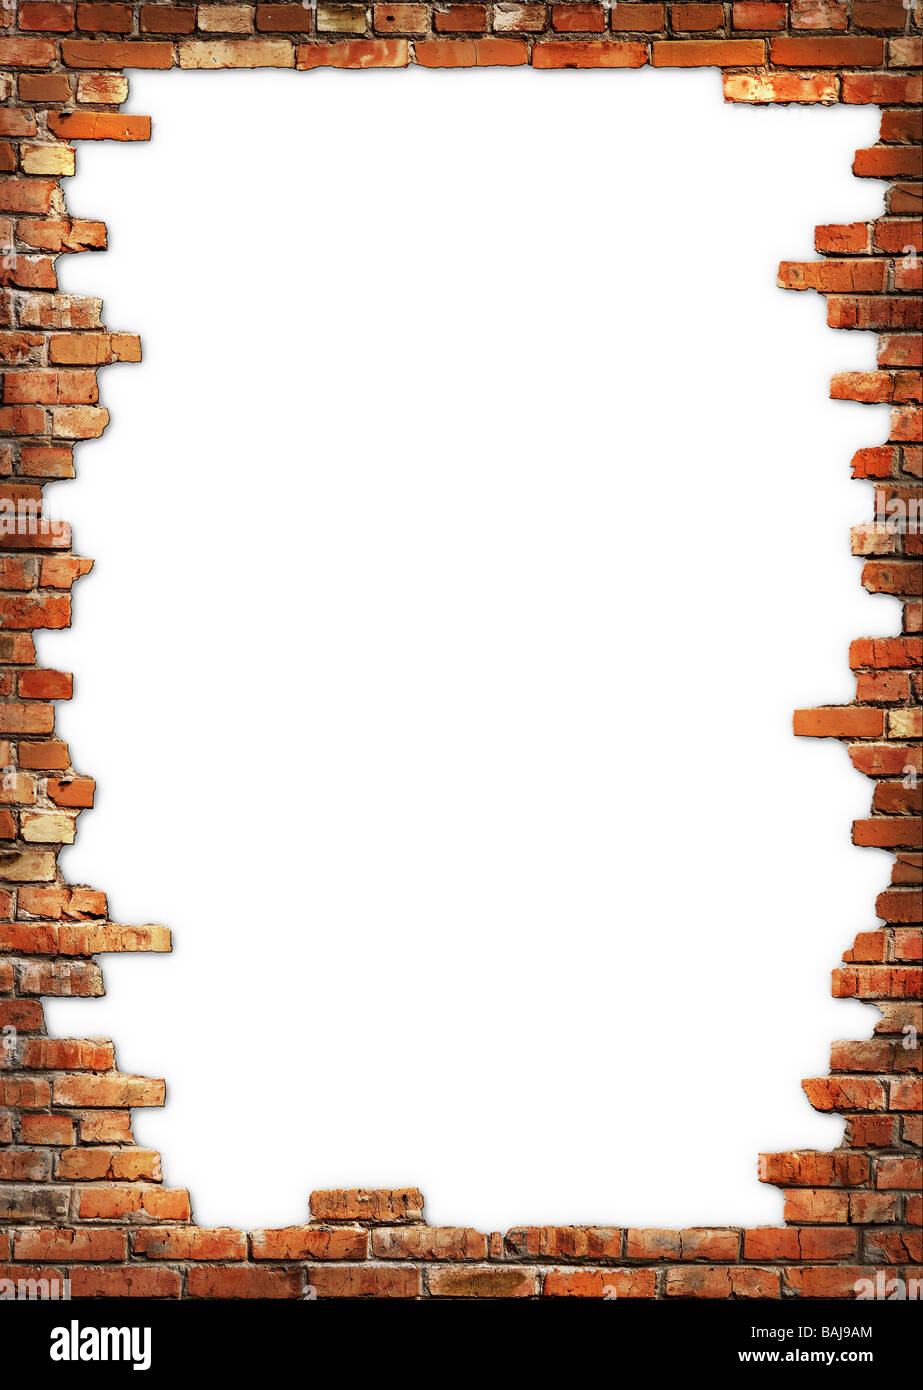 White background with brick wall framing - Stock Image